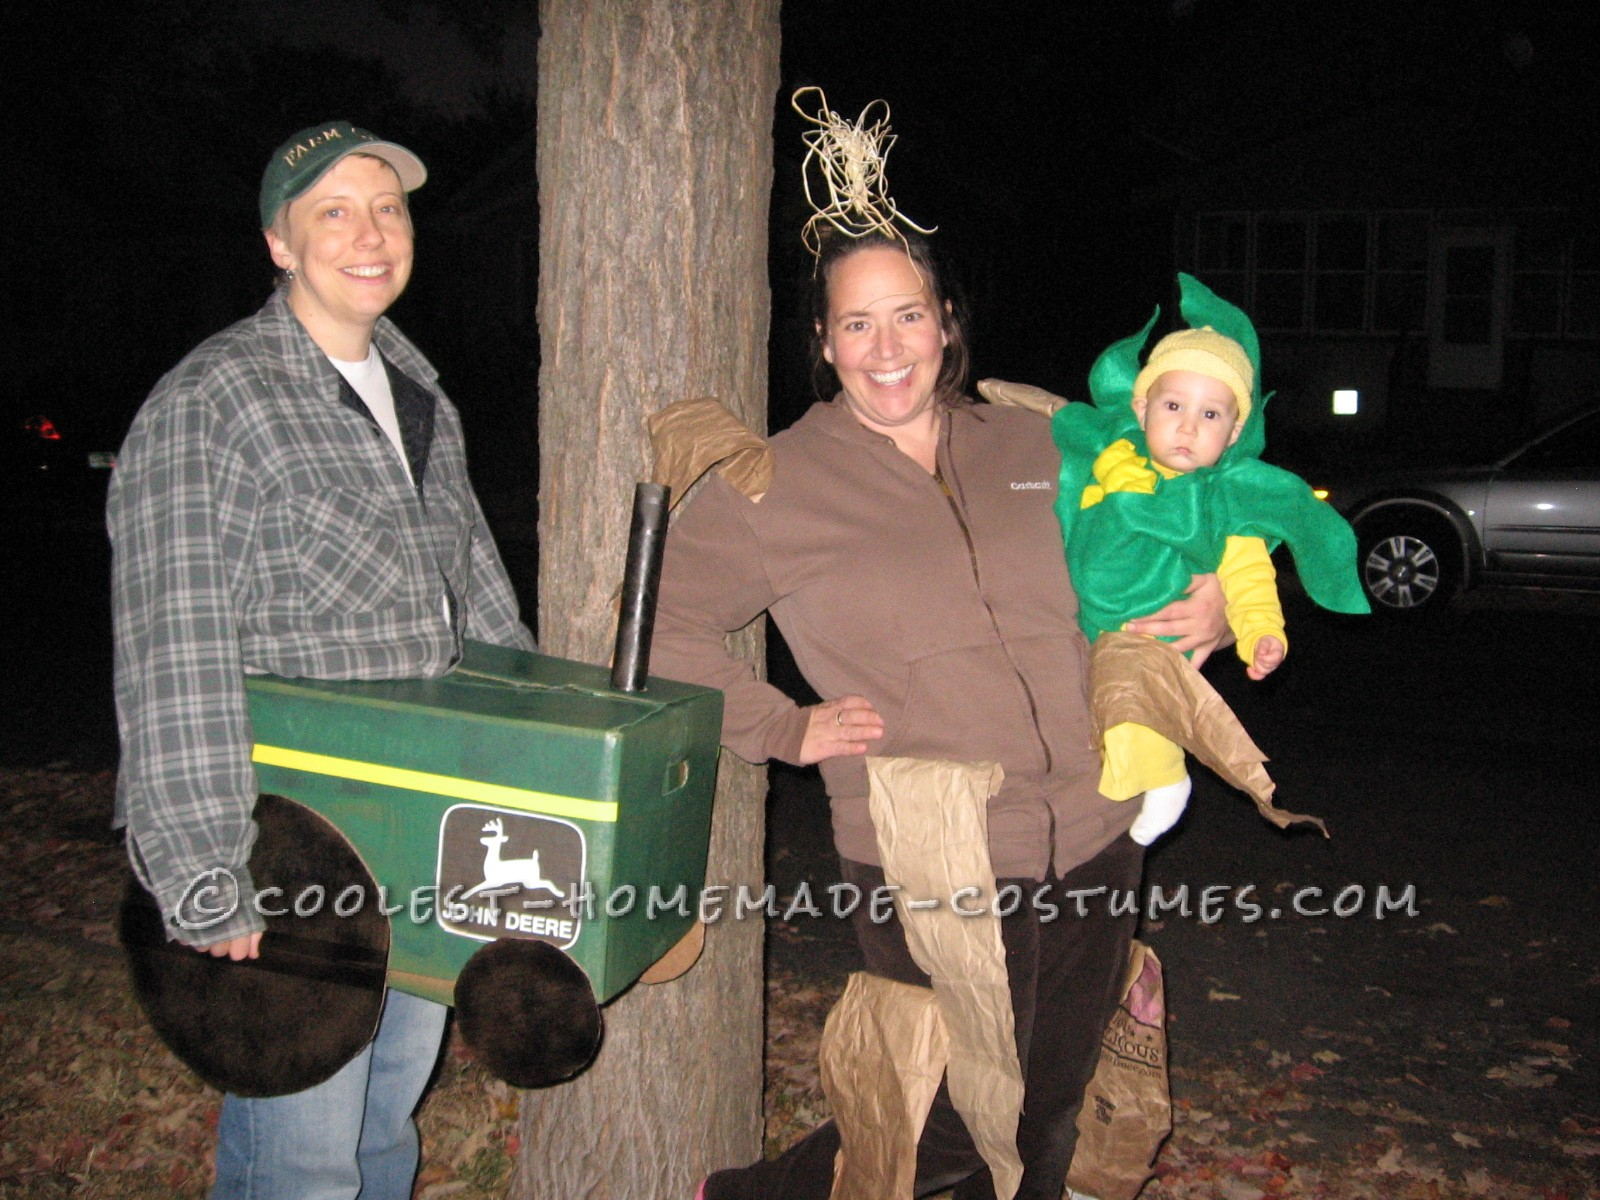 cool family costume celebrates iowa corn!